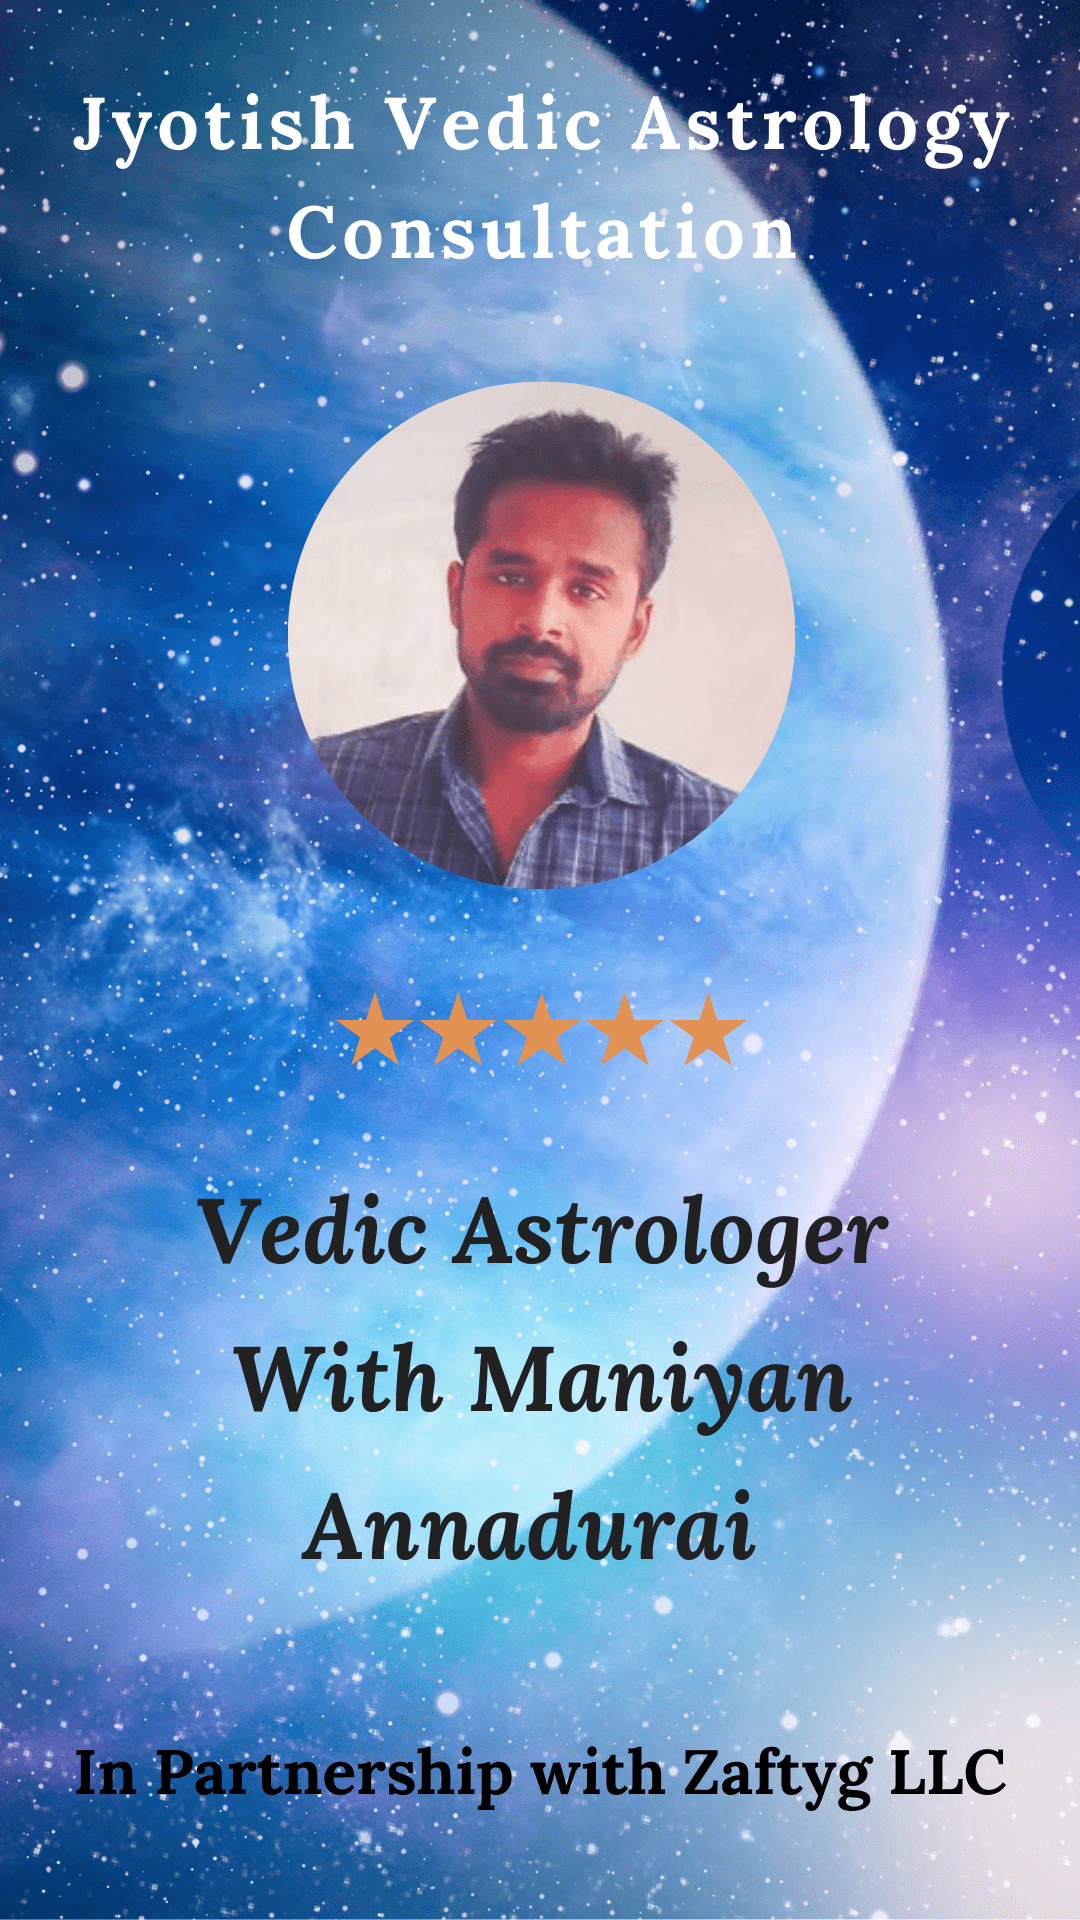 Jyotish Vedic Astrology Consultation